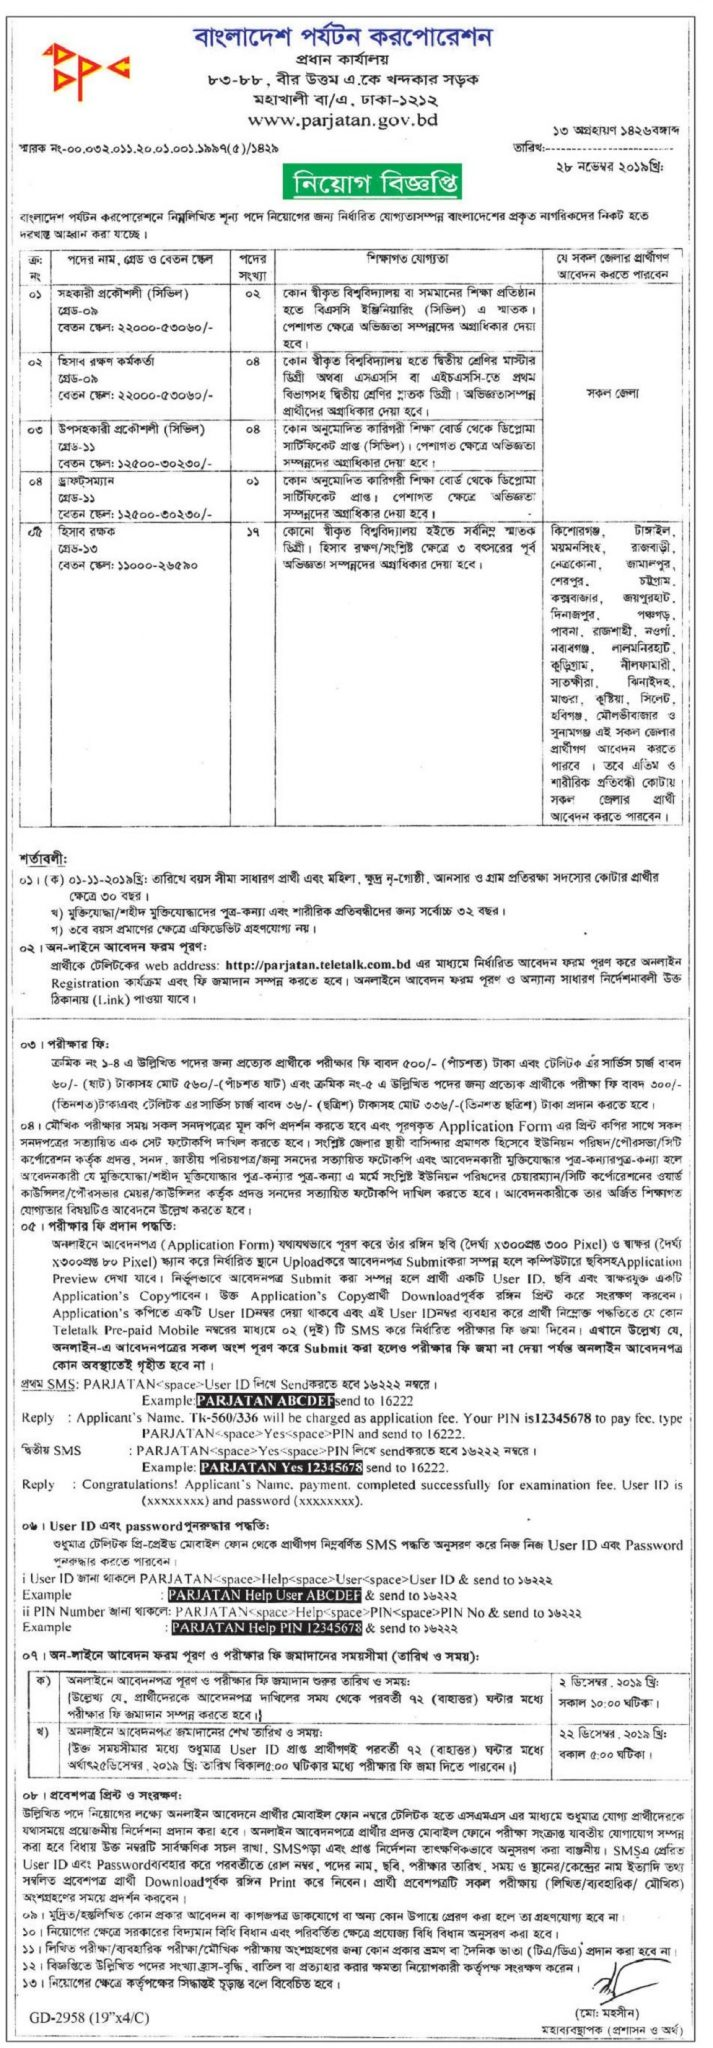 Bangladesh Parjatan Corporation Job Circular 2019 has been published in daily newspaper for the job hunters and to get form the popular job news website with all of necessary details such as published date, pay, application process and more. However, you can also get others job admit card download link, sms process, etc. Anyway, we would like to inform you that, the Jalalabad Gas Transmission and Distribution Company Ltd is a renowned oil and gas D Bangladesh Parjatan Corporation is a statutory board under the Ministry of Civil Aviation & Tourism of Bangladesh, tasked to promote the tourism industry of the country, now the company hires fresh man power, please to check and submit your resume. ■ Organization Name: Bangladesh Parjatan Corporation ■ Post Position Name: As per circular ■ Job Published Date: 29 November 2019 ■ Application Deadline: 22 December 2019 ■ Salary: N/A ■ Educational Requirements: See Job Circular Image ■ Experience Requirements: See Job Circular Image ■ Number of Job Vacancy: N/A ■ Age Limit for Jobs: 18-30 Years ■ Jobs Location: Anywhere in Bangladesh. ■ Job Source: The Independent ■ Job Nature: Full-time ■ Job Type: Government Job ■ Employment Type: Permanent Job ■ Applying Procedure: See Job Circular Image Bangladesh Parjatan Corporation Job Circular 2019 If you want to another government job circular, please check our website, here we are sharing all latest job circular such as new job, today jobs, data entry job, career tips, part time jobs, bank job, Dhaka jobs, download admit card, best job news, exam routine, suggestion and many more. For live update like facebook page and join facebook group. Thanks for your time being.